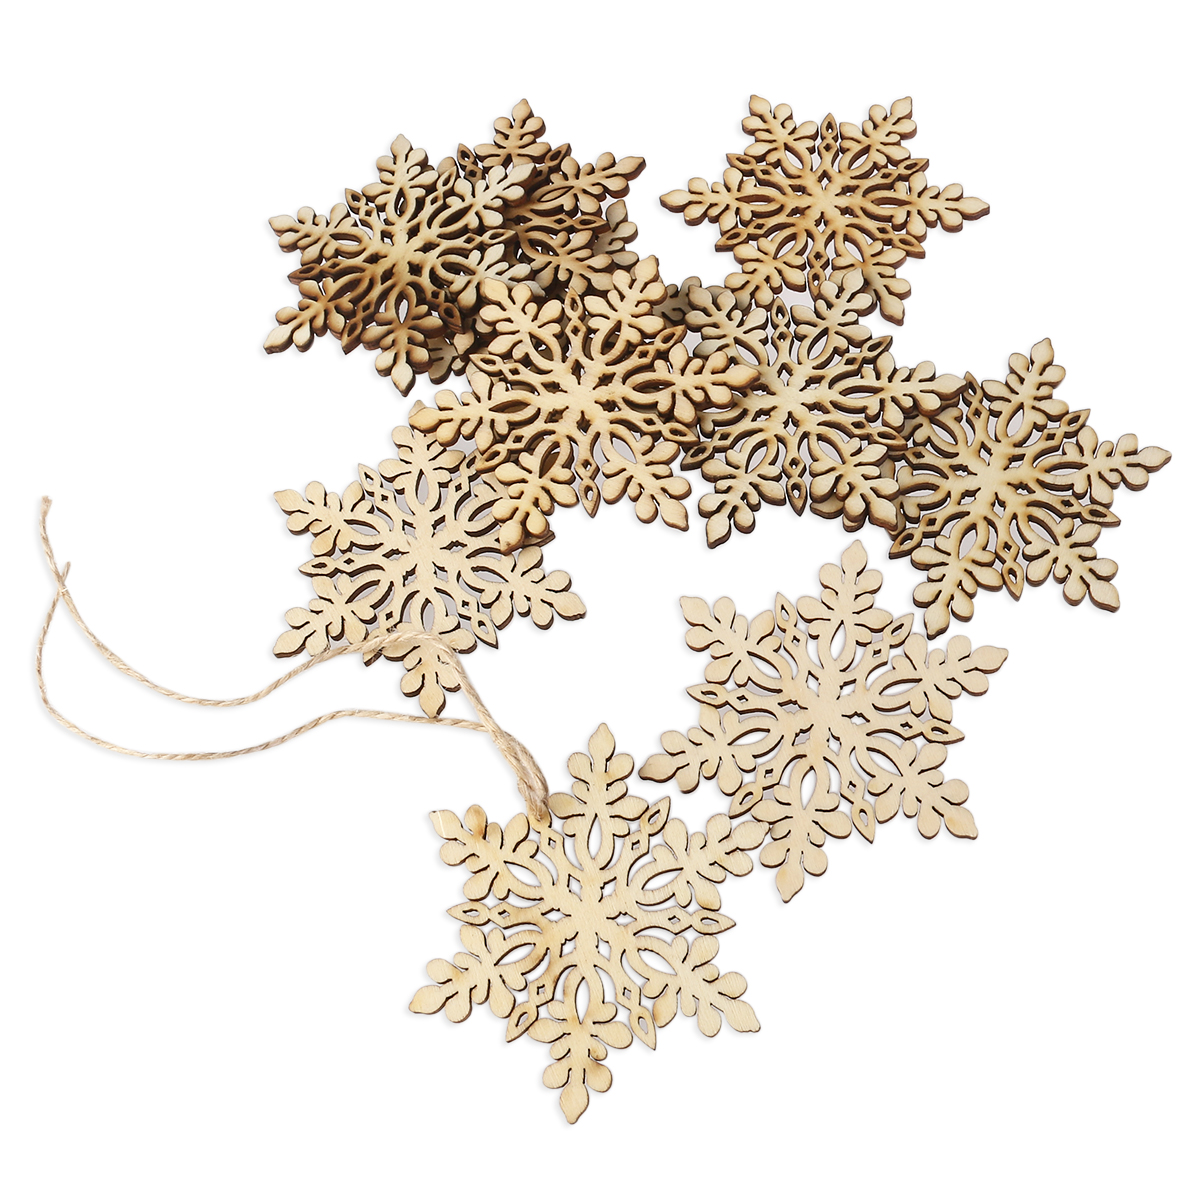 10pcs Christmas Snowflake DIY Wood Crafts Sharp Hexagonal Wooden Snowflake Hanging Ornament Decoration Pendants With String